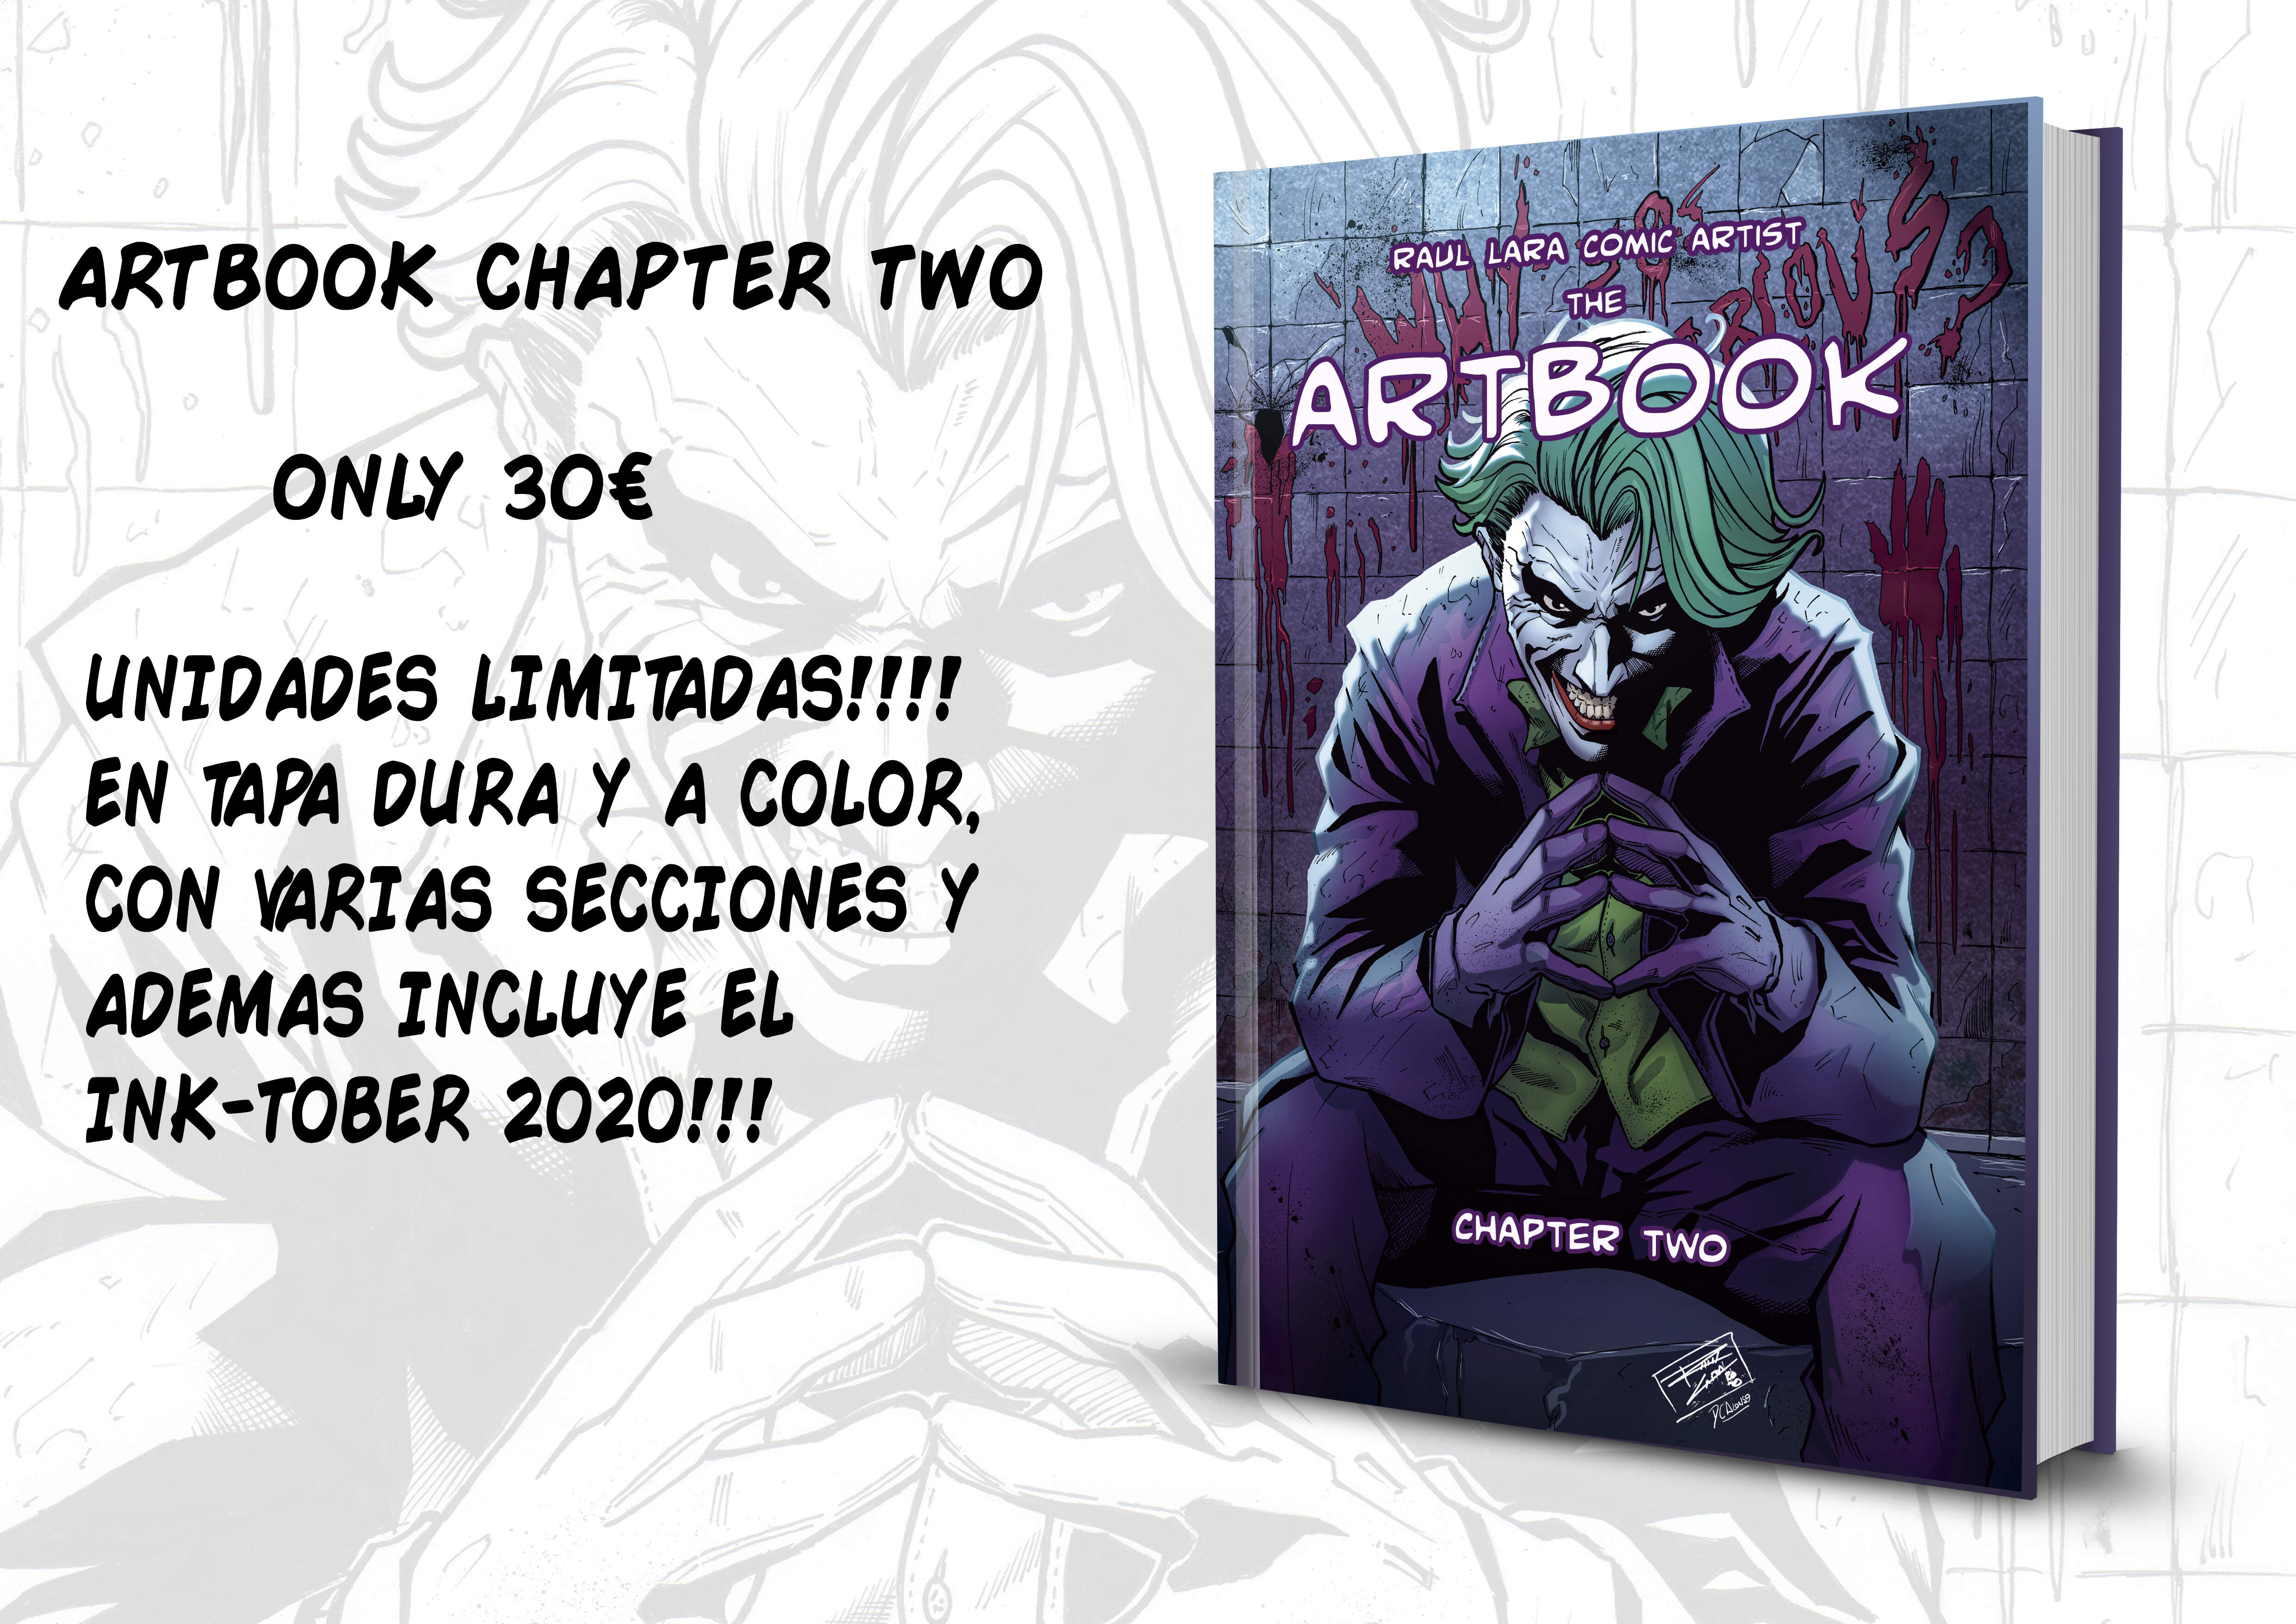 ARTBOOK CHAPTER TWO LIMITED EDITION